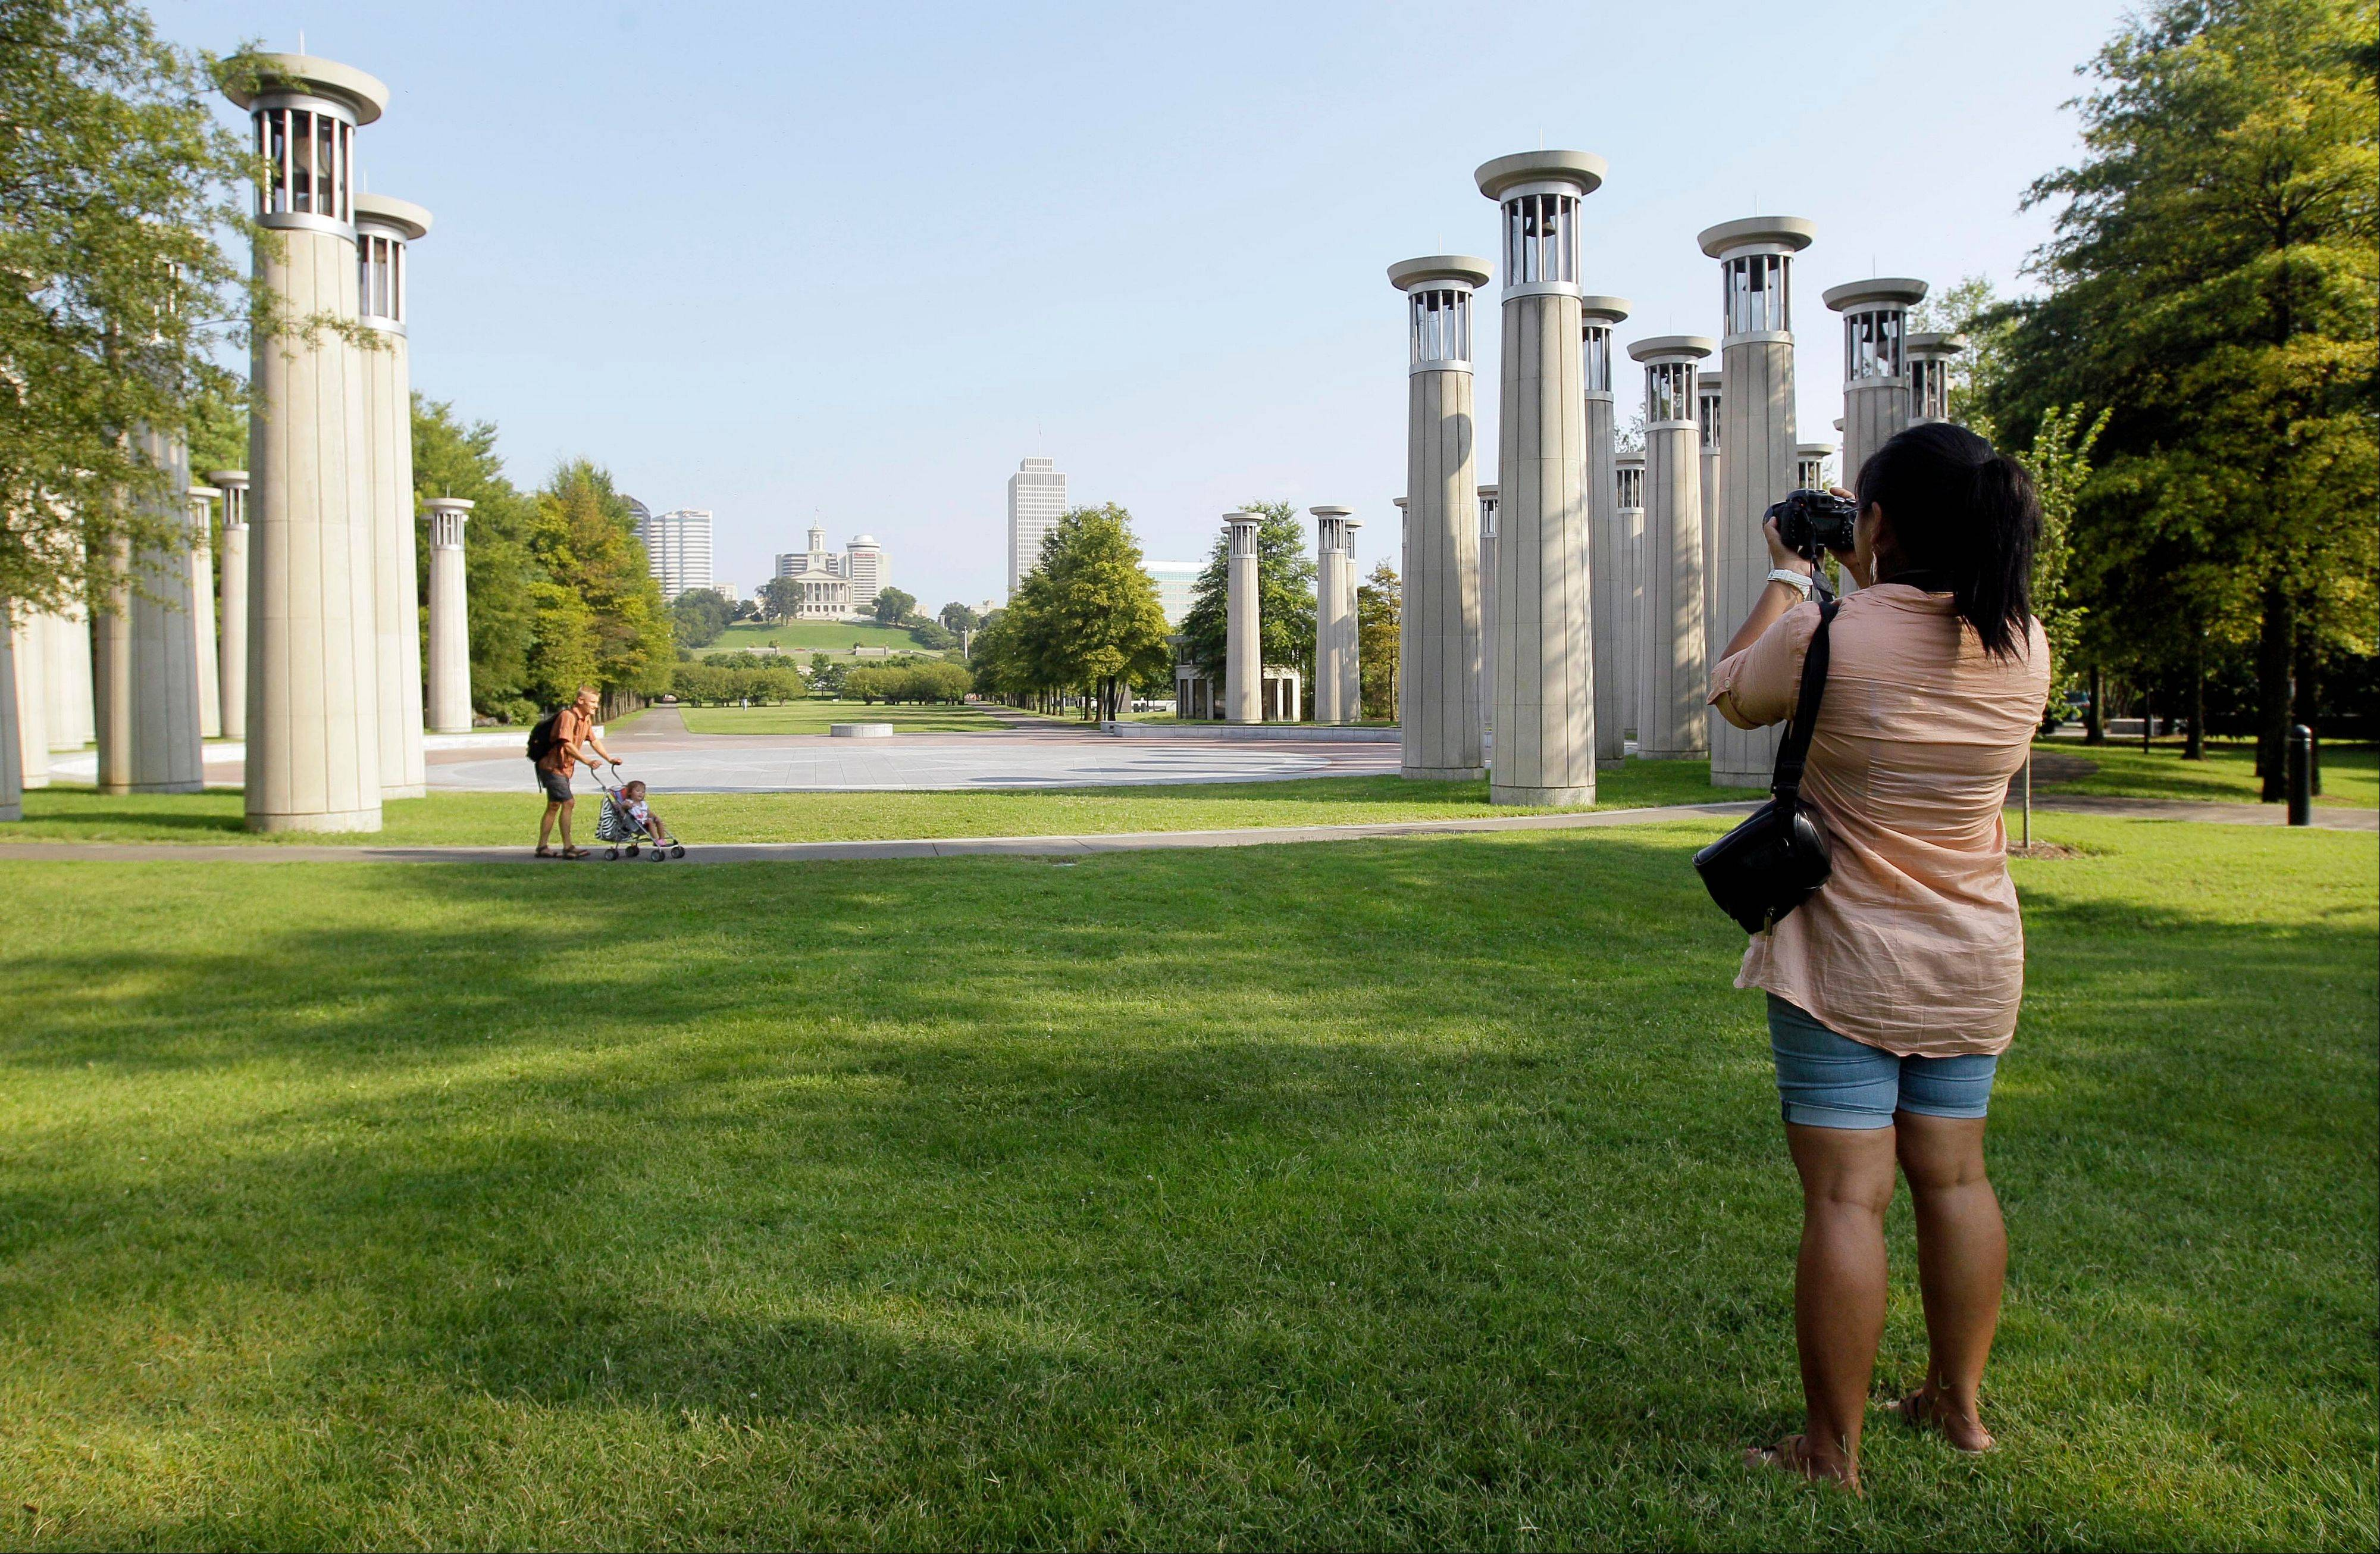 Cathy Bartnick, of Albuquerque, N.M., photographs the Bicentennial Capitol Mall State Park in Nashville, Tenn.